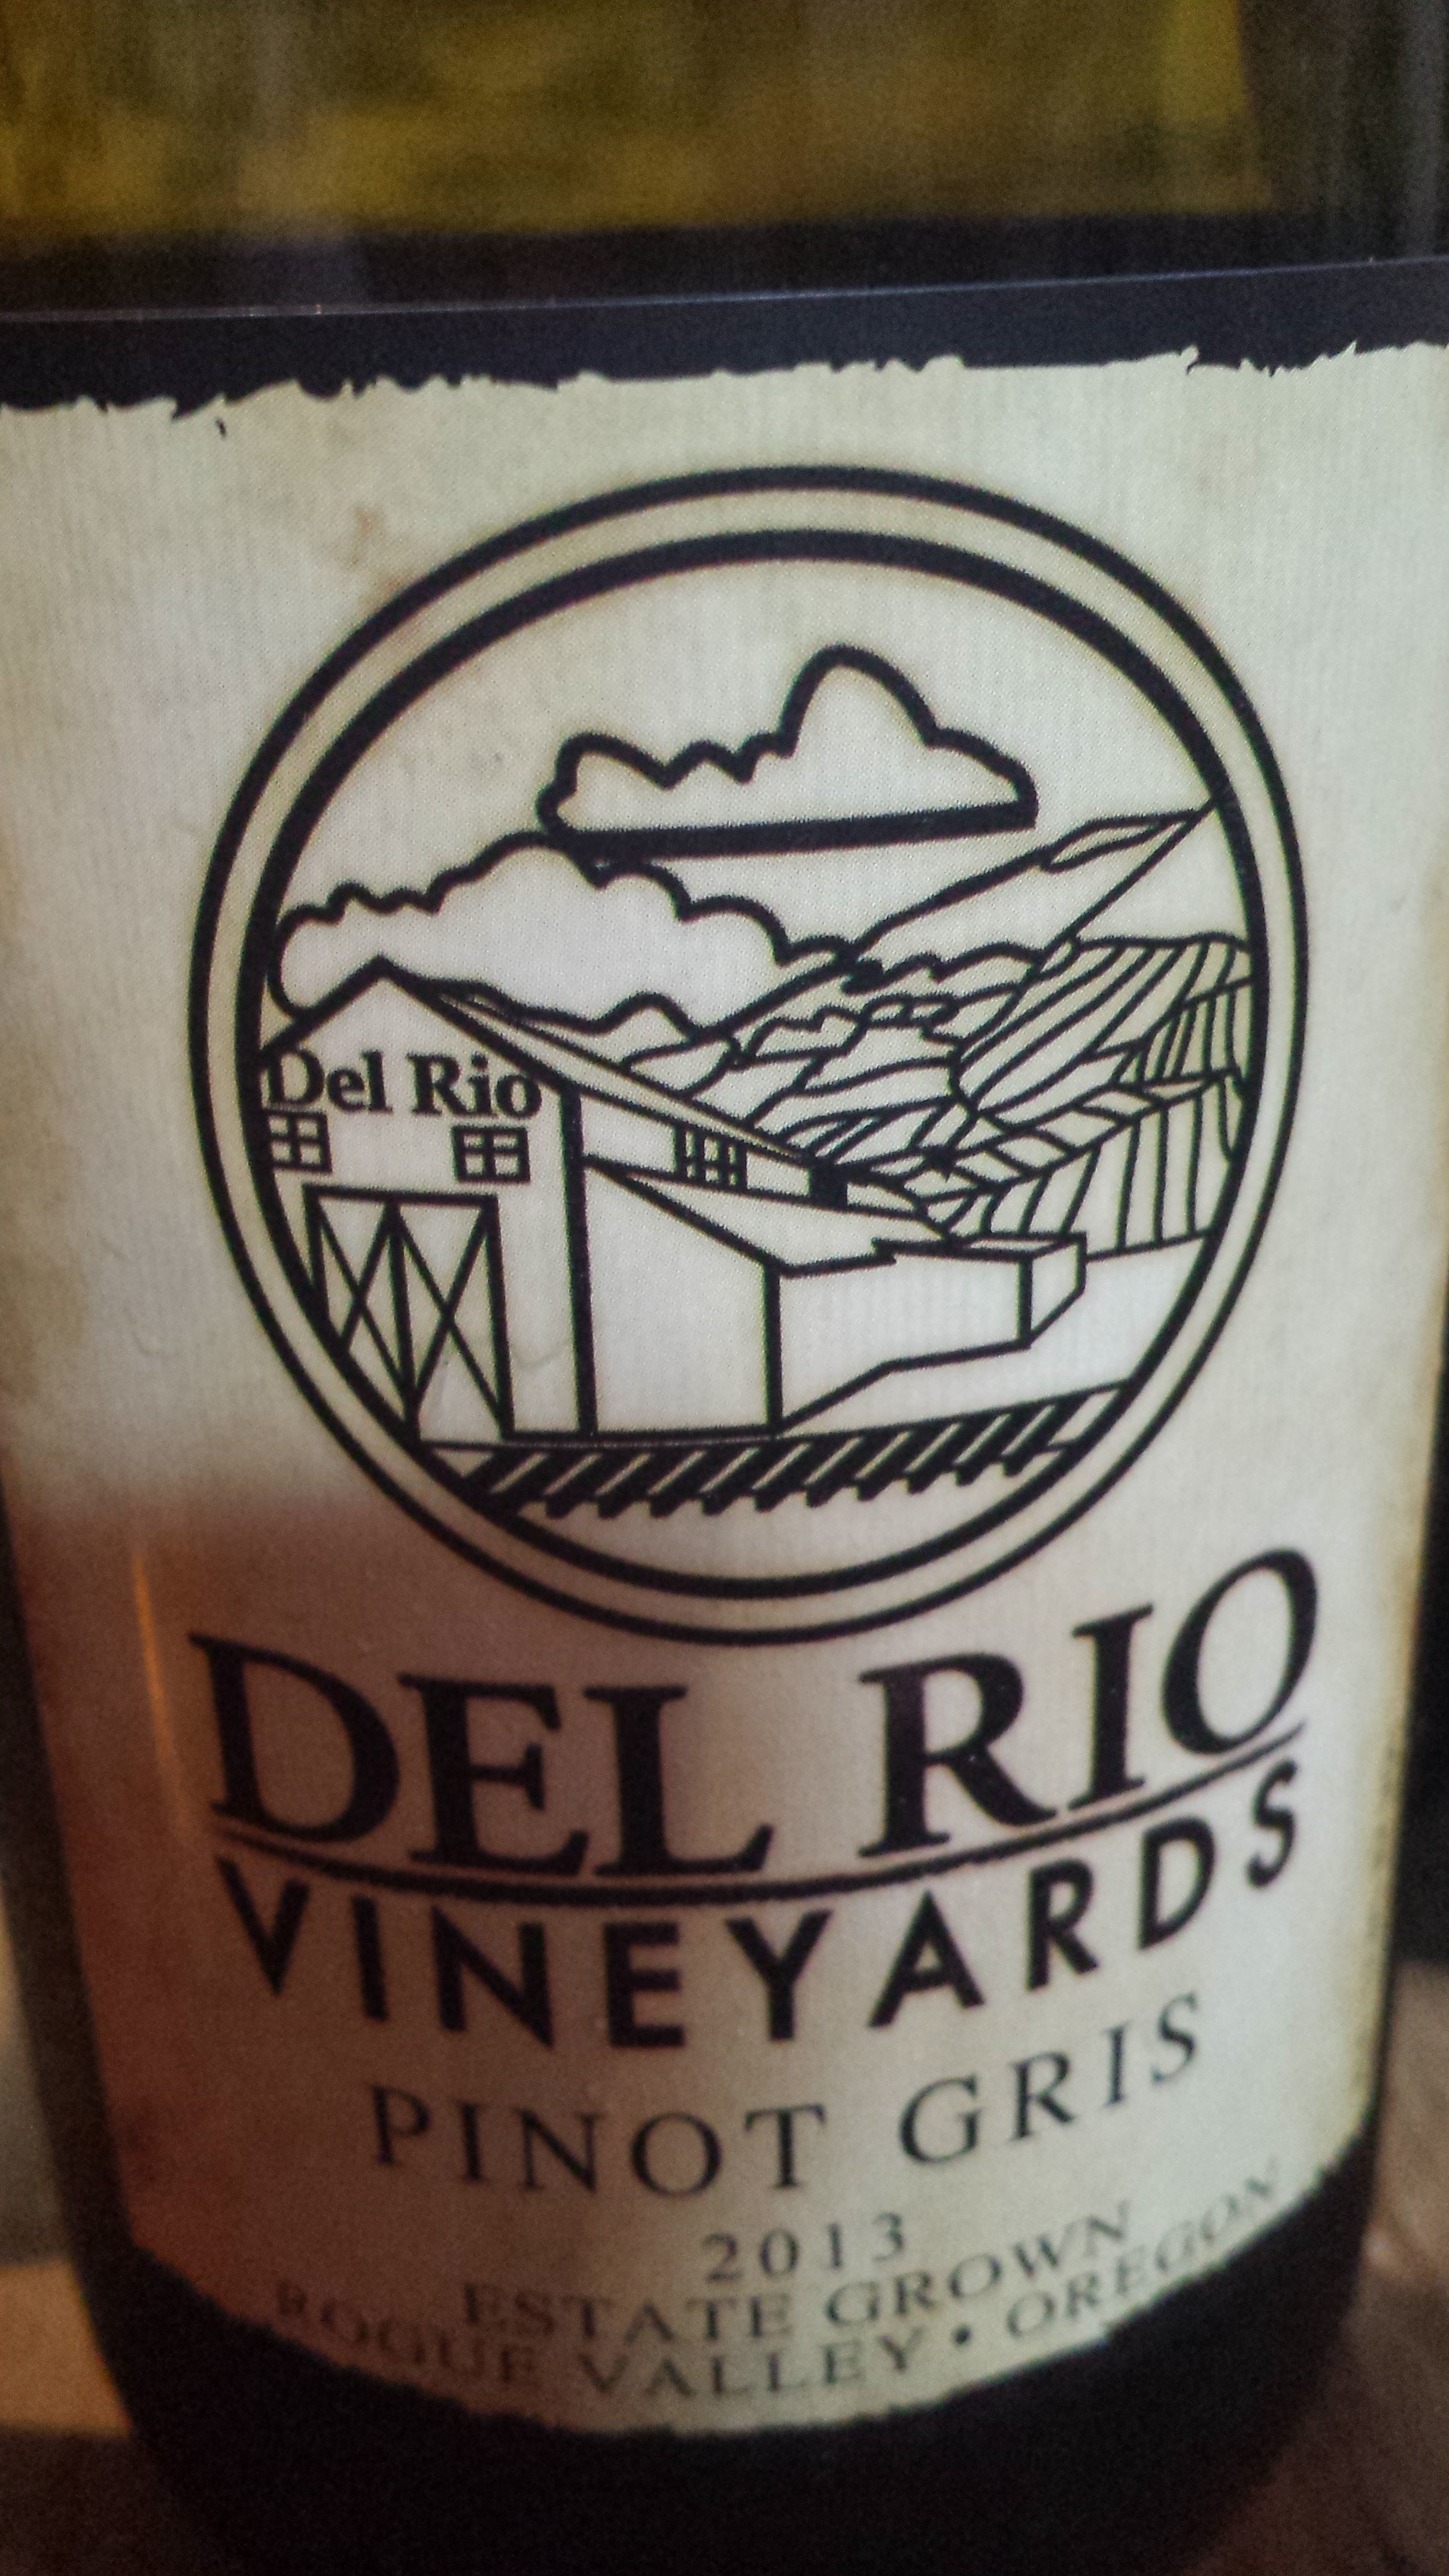 Del Rio Vineyards – Pinot Gris 2013 – Estate Grown – Rogue Valley